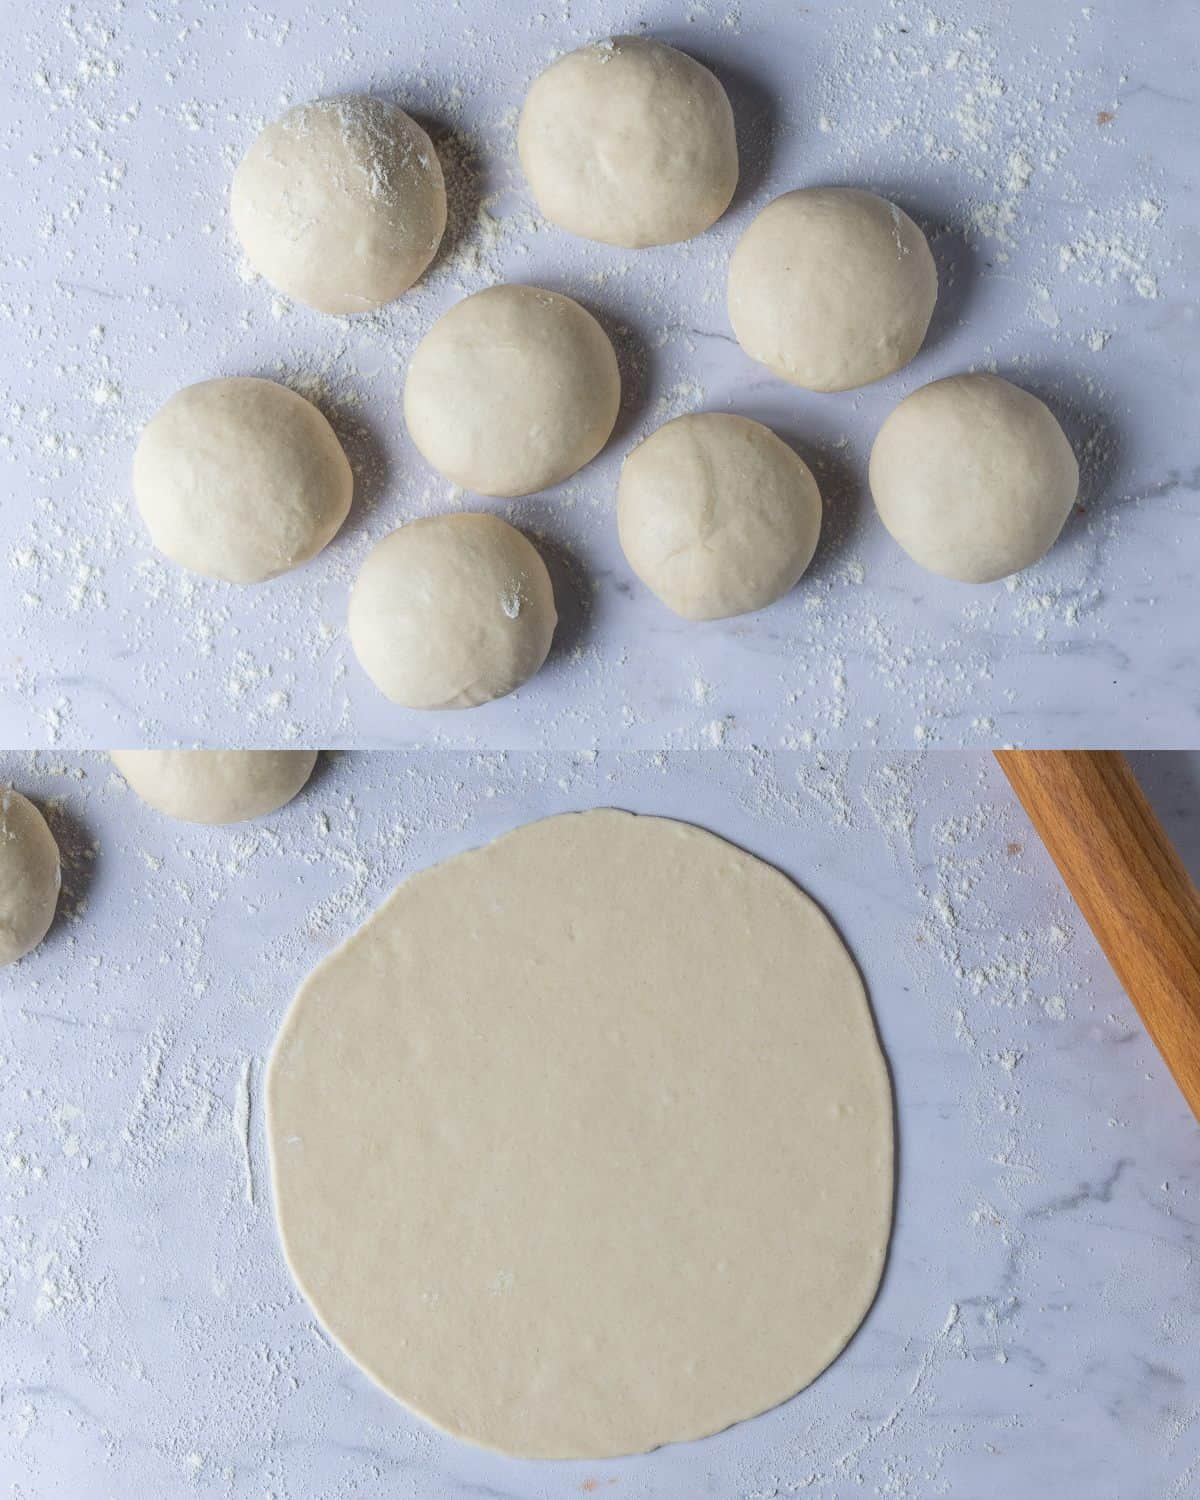 step 2 - rolling out the dough